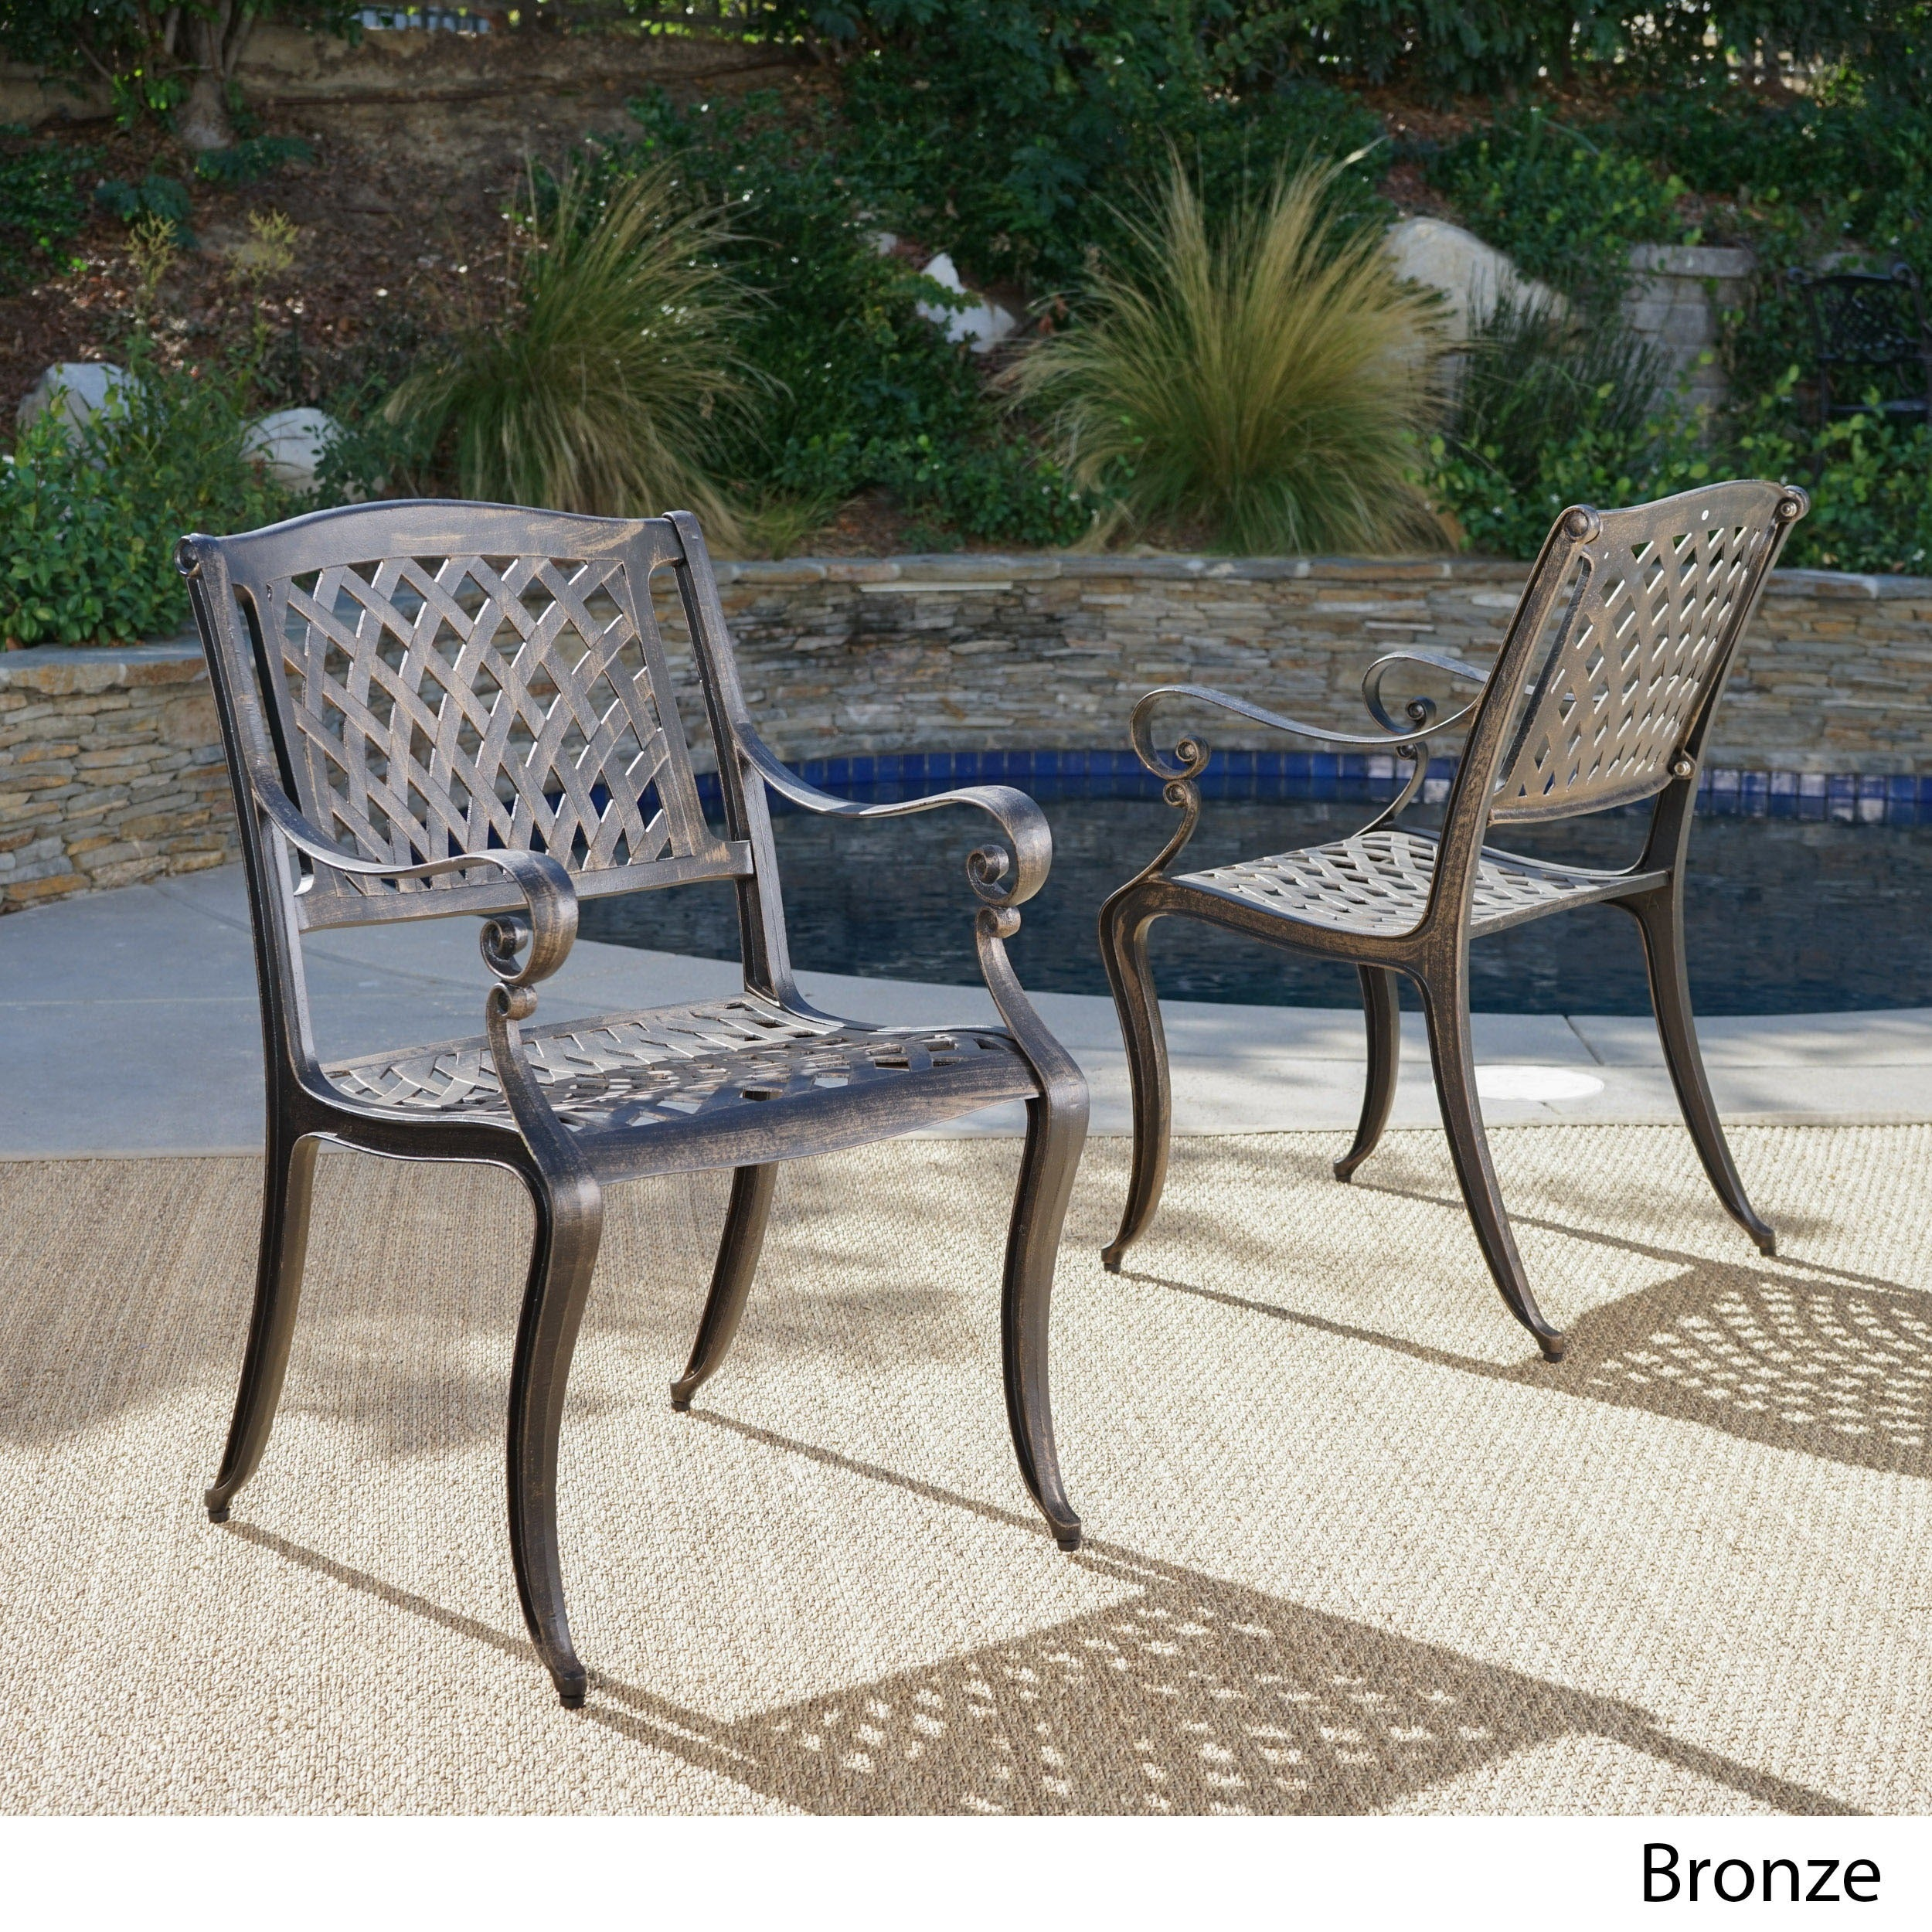 patio home product wicker knight furniture df of set overstock island outdoor free rhode with cushion today dining shipping chair christopher garden by